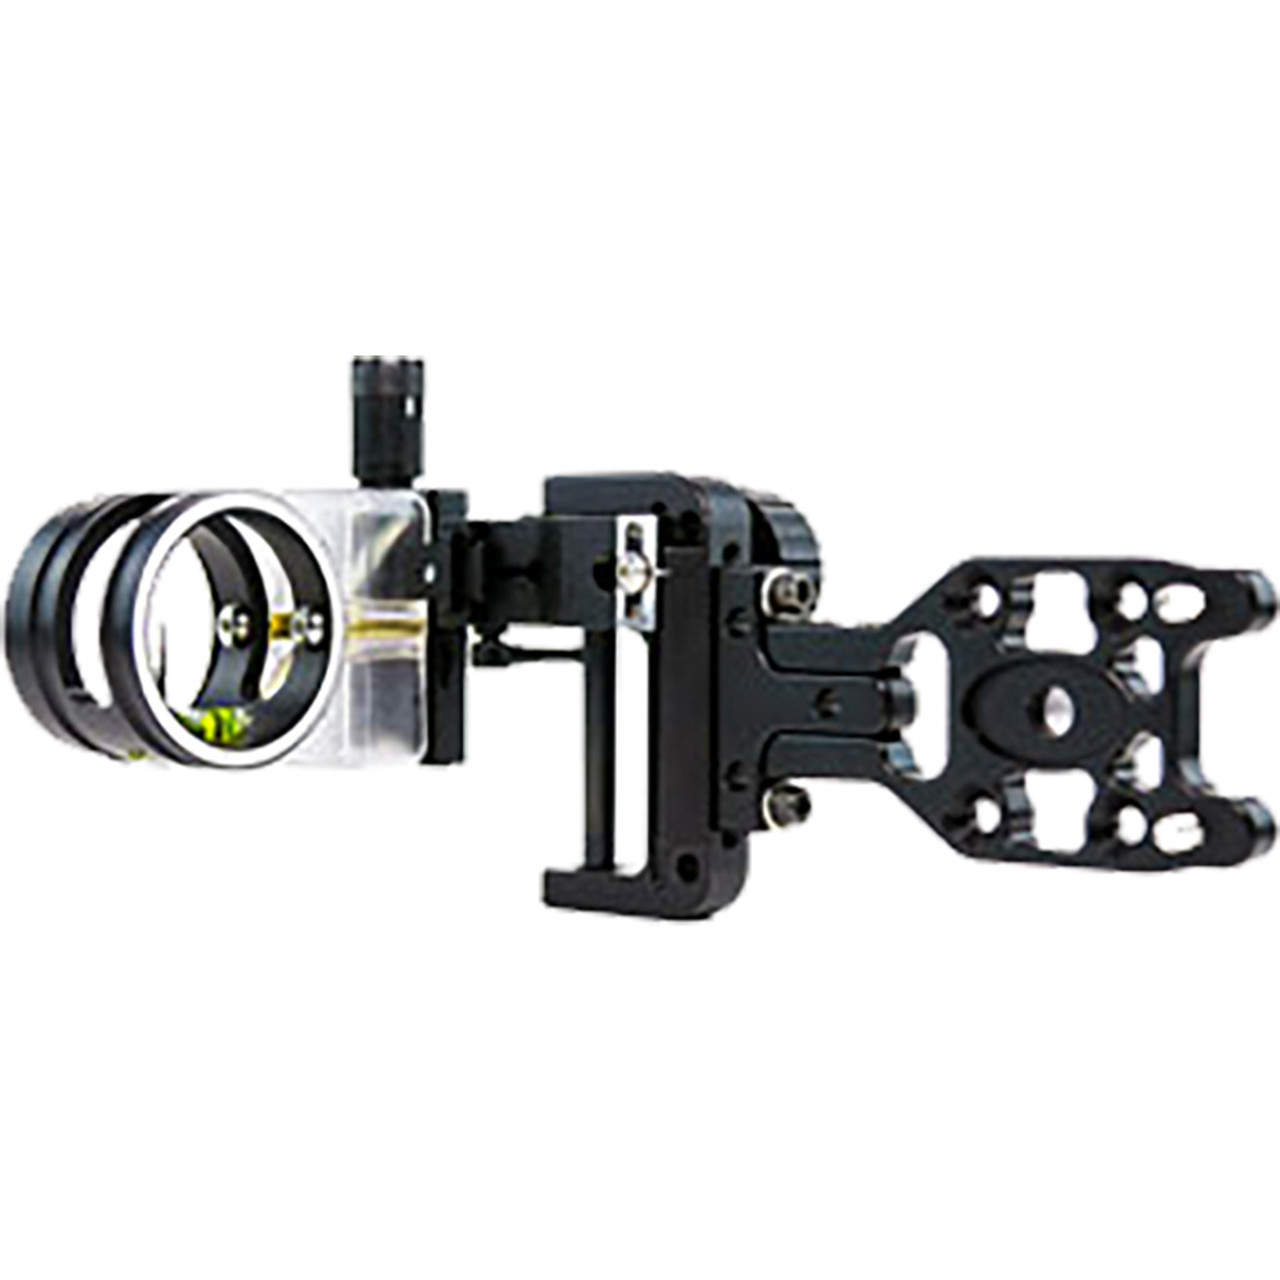 New in Package Sword Punisher Pro RH Bow Sight